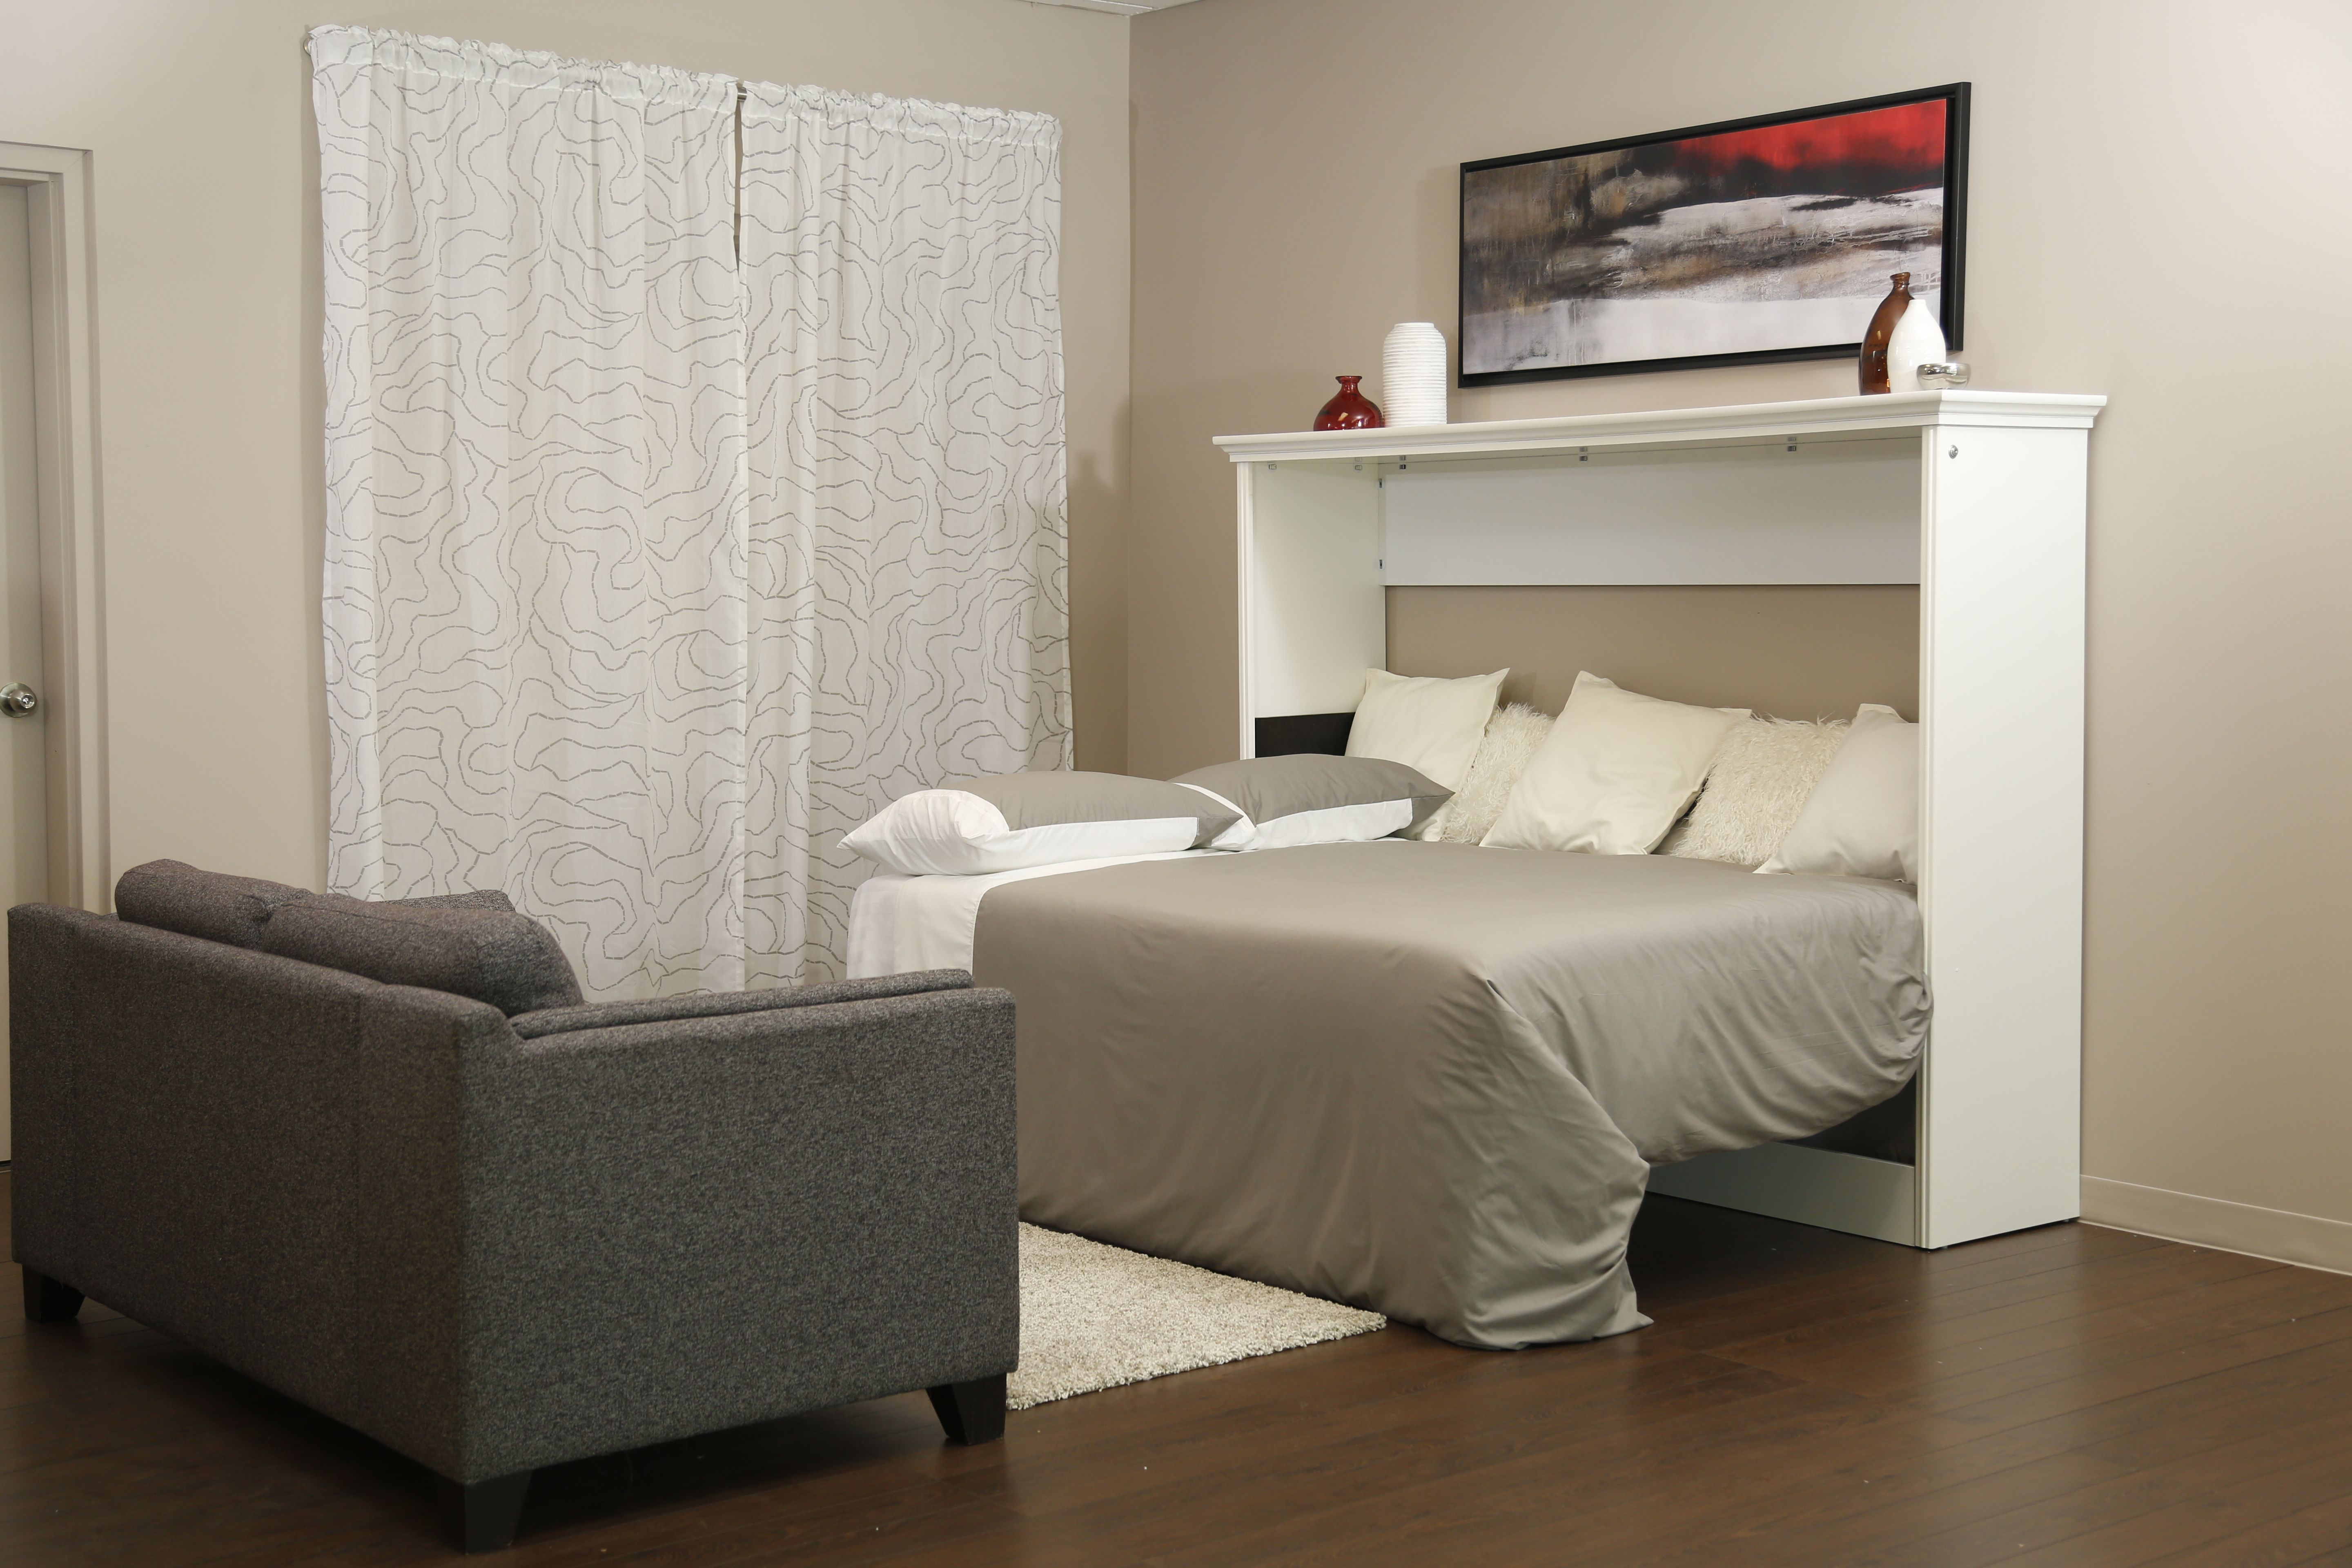 Heres The Allegra Sideways Wall Bed At Night This Stylish